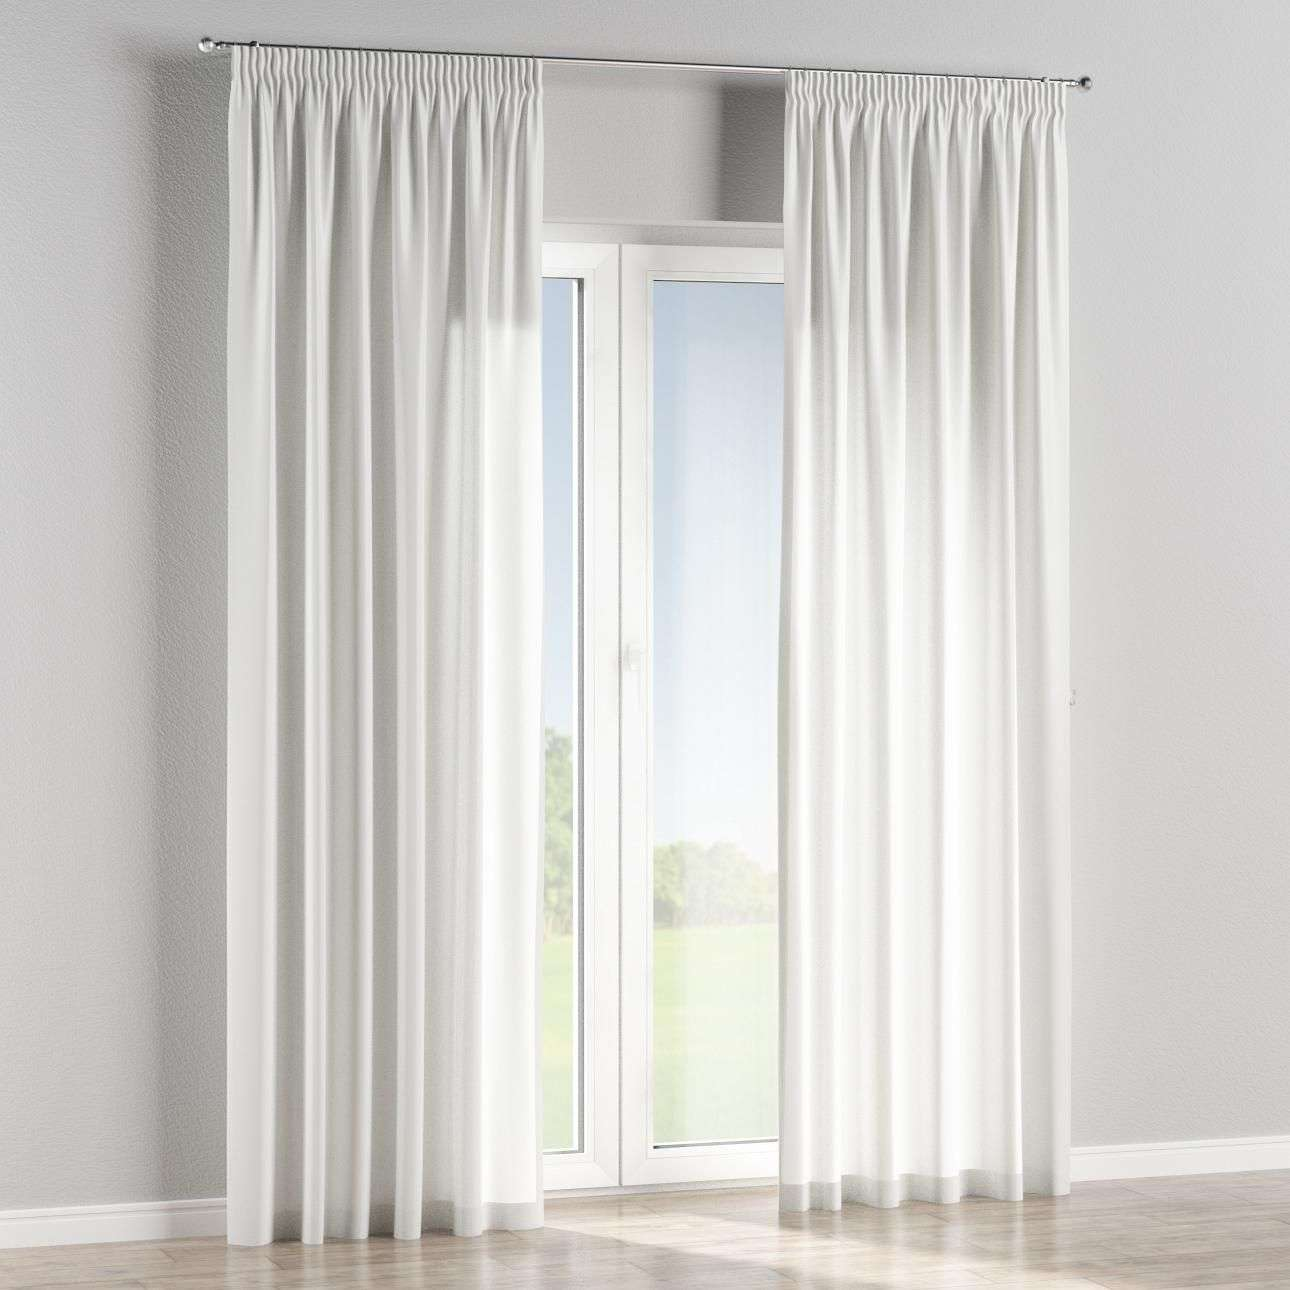 Pencil pleat lined curtains in collection Cardiff, fabric: 136-20